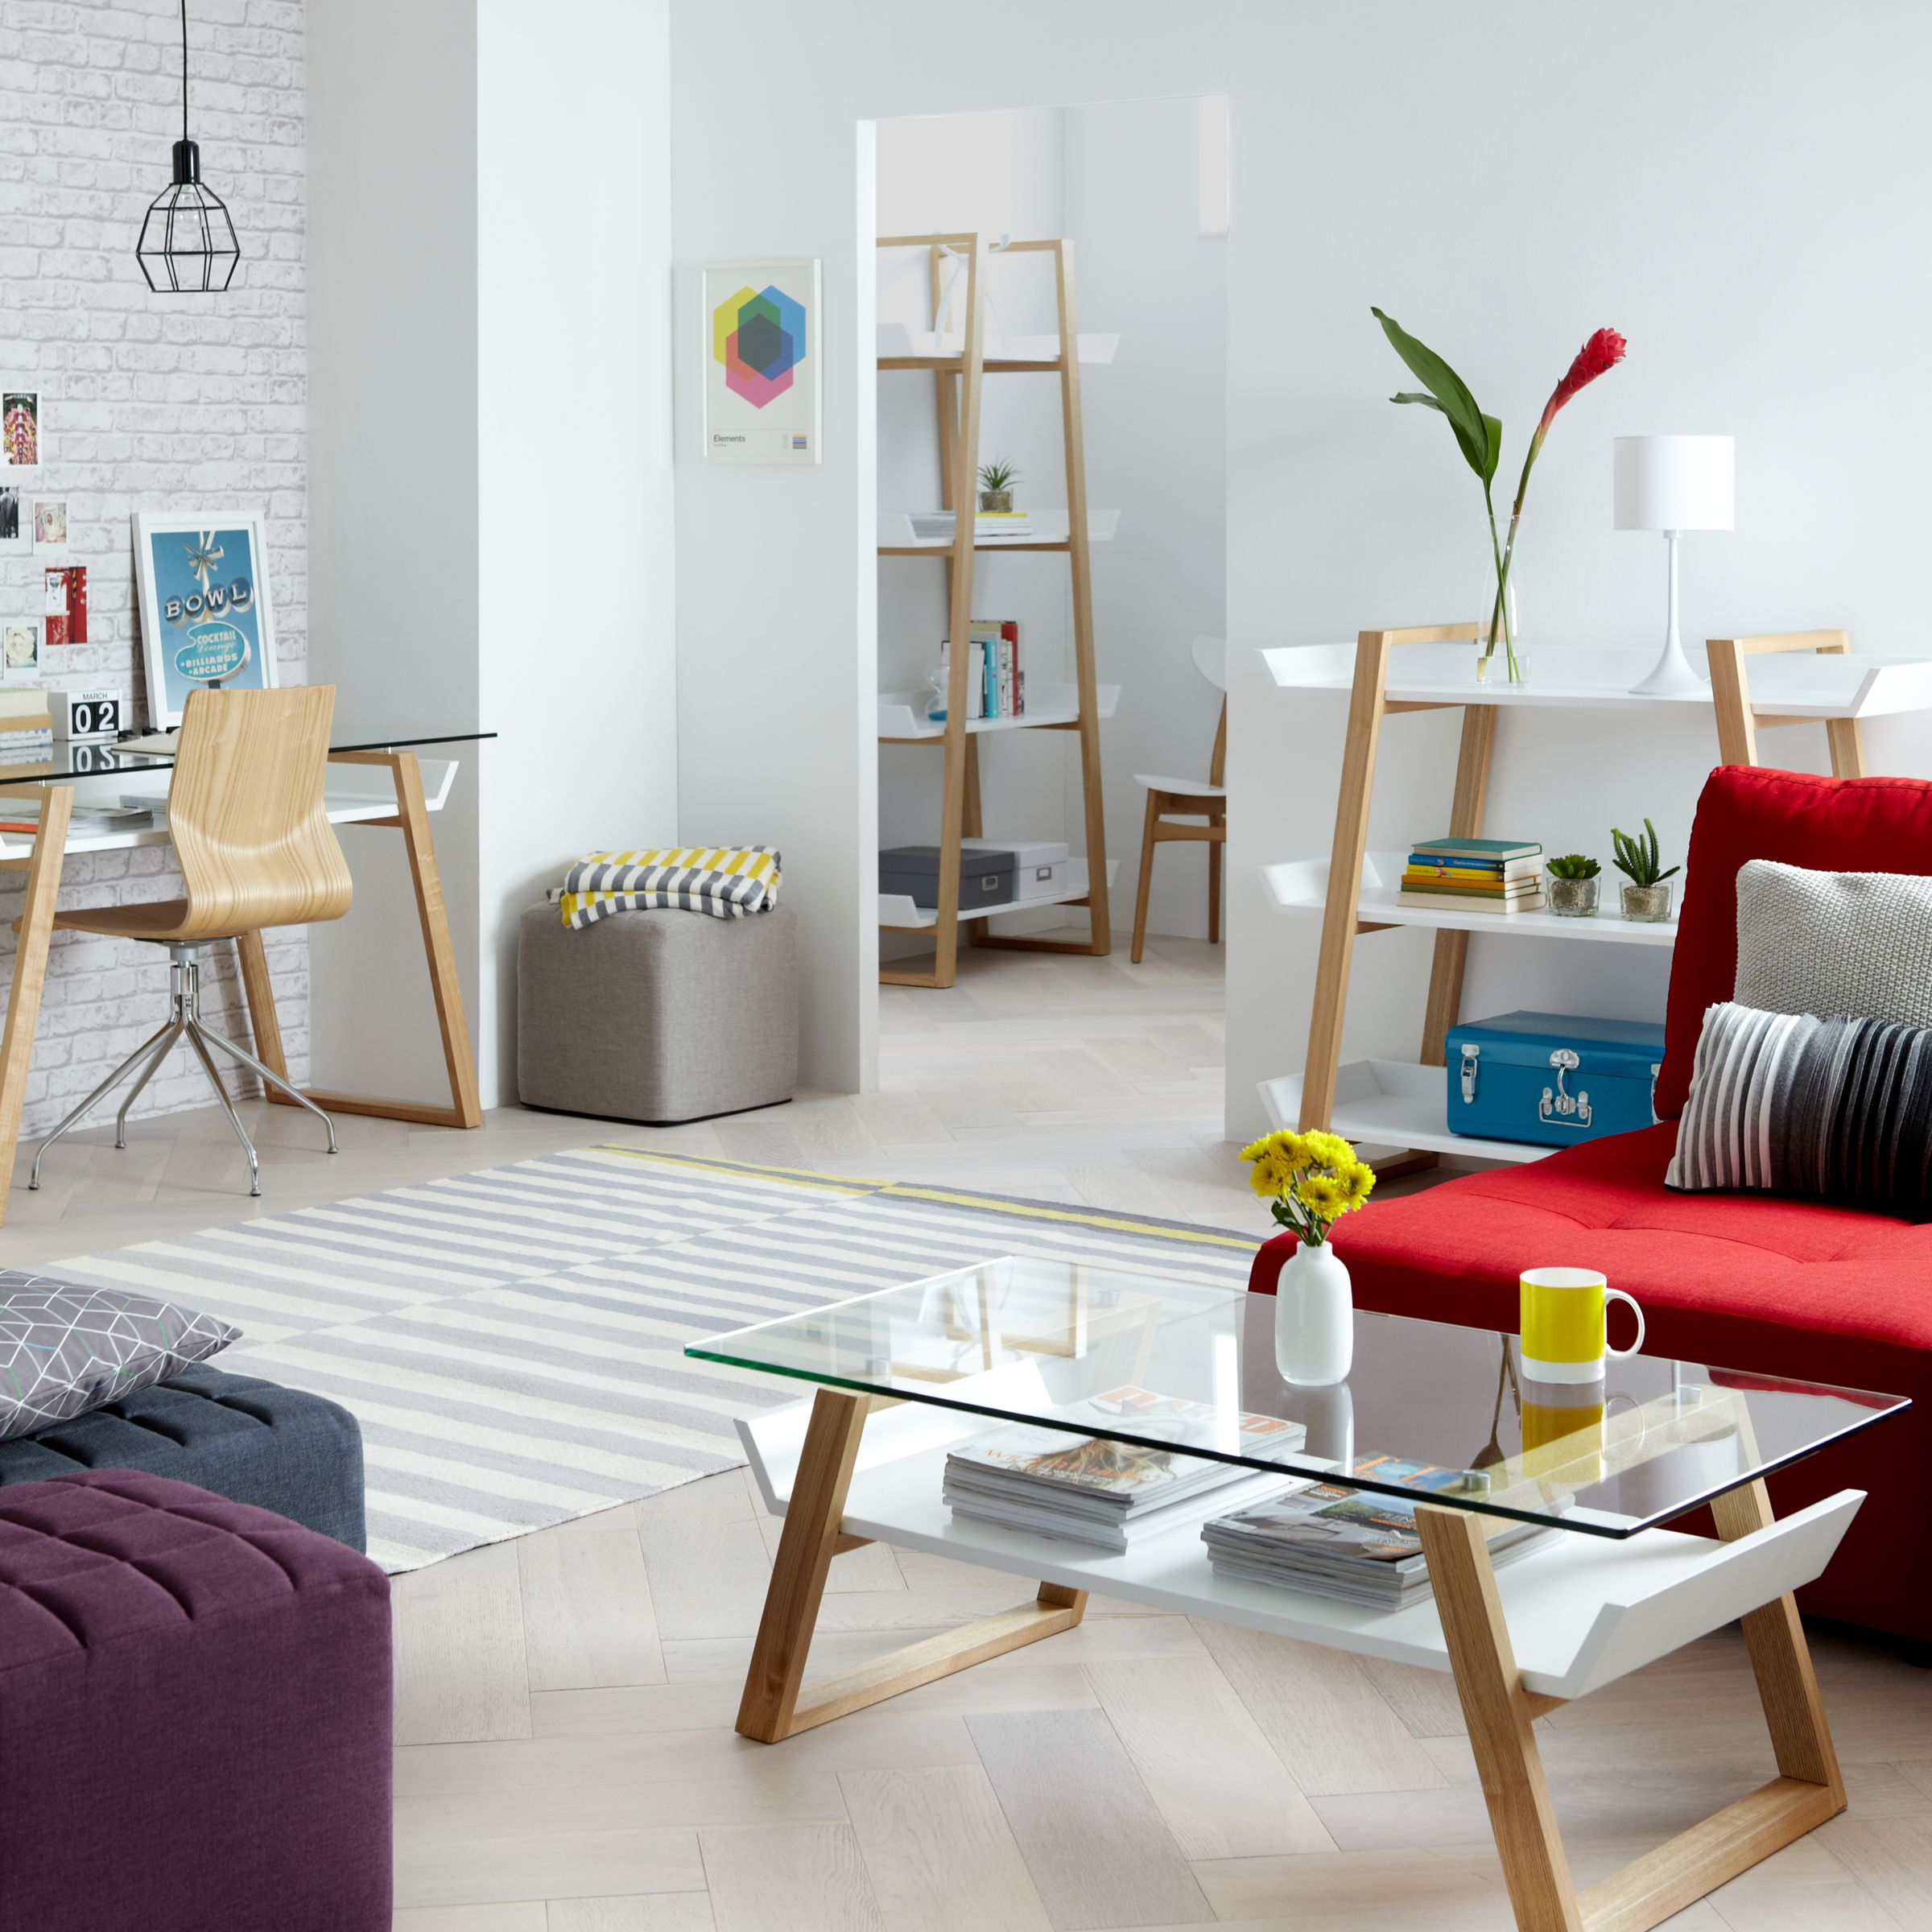 Awesome John Lewis Home Design Images - Home Decorating Ideas ...